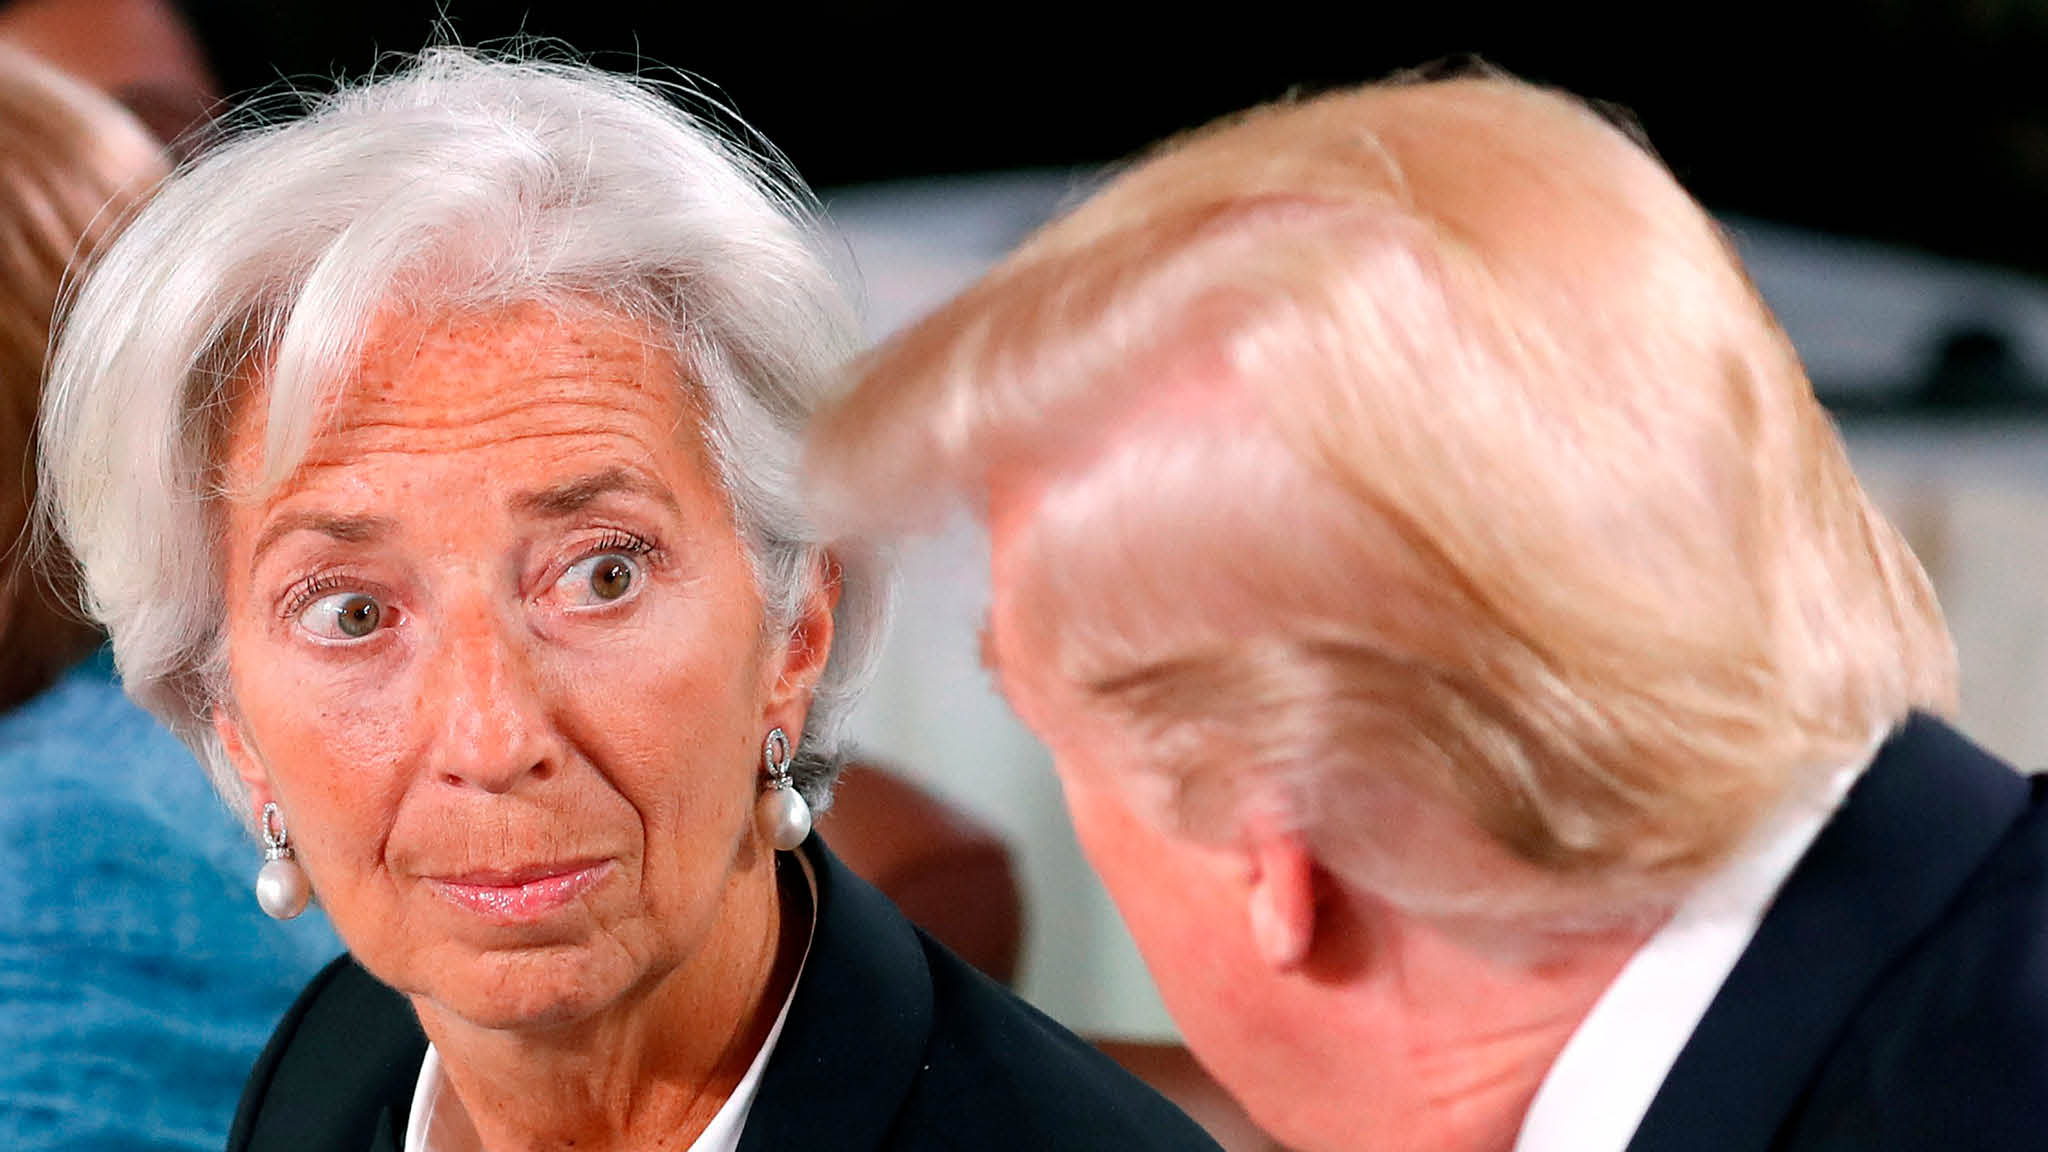 IMF: the fight to woo a sceptical US over funding